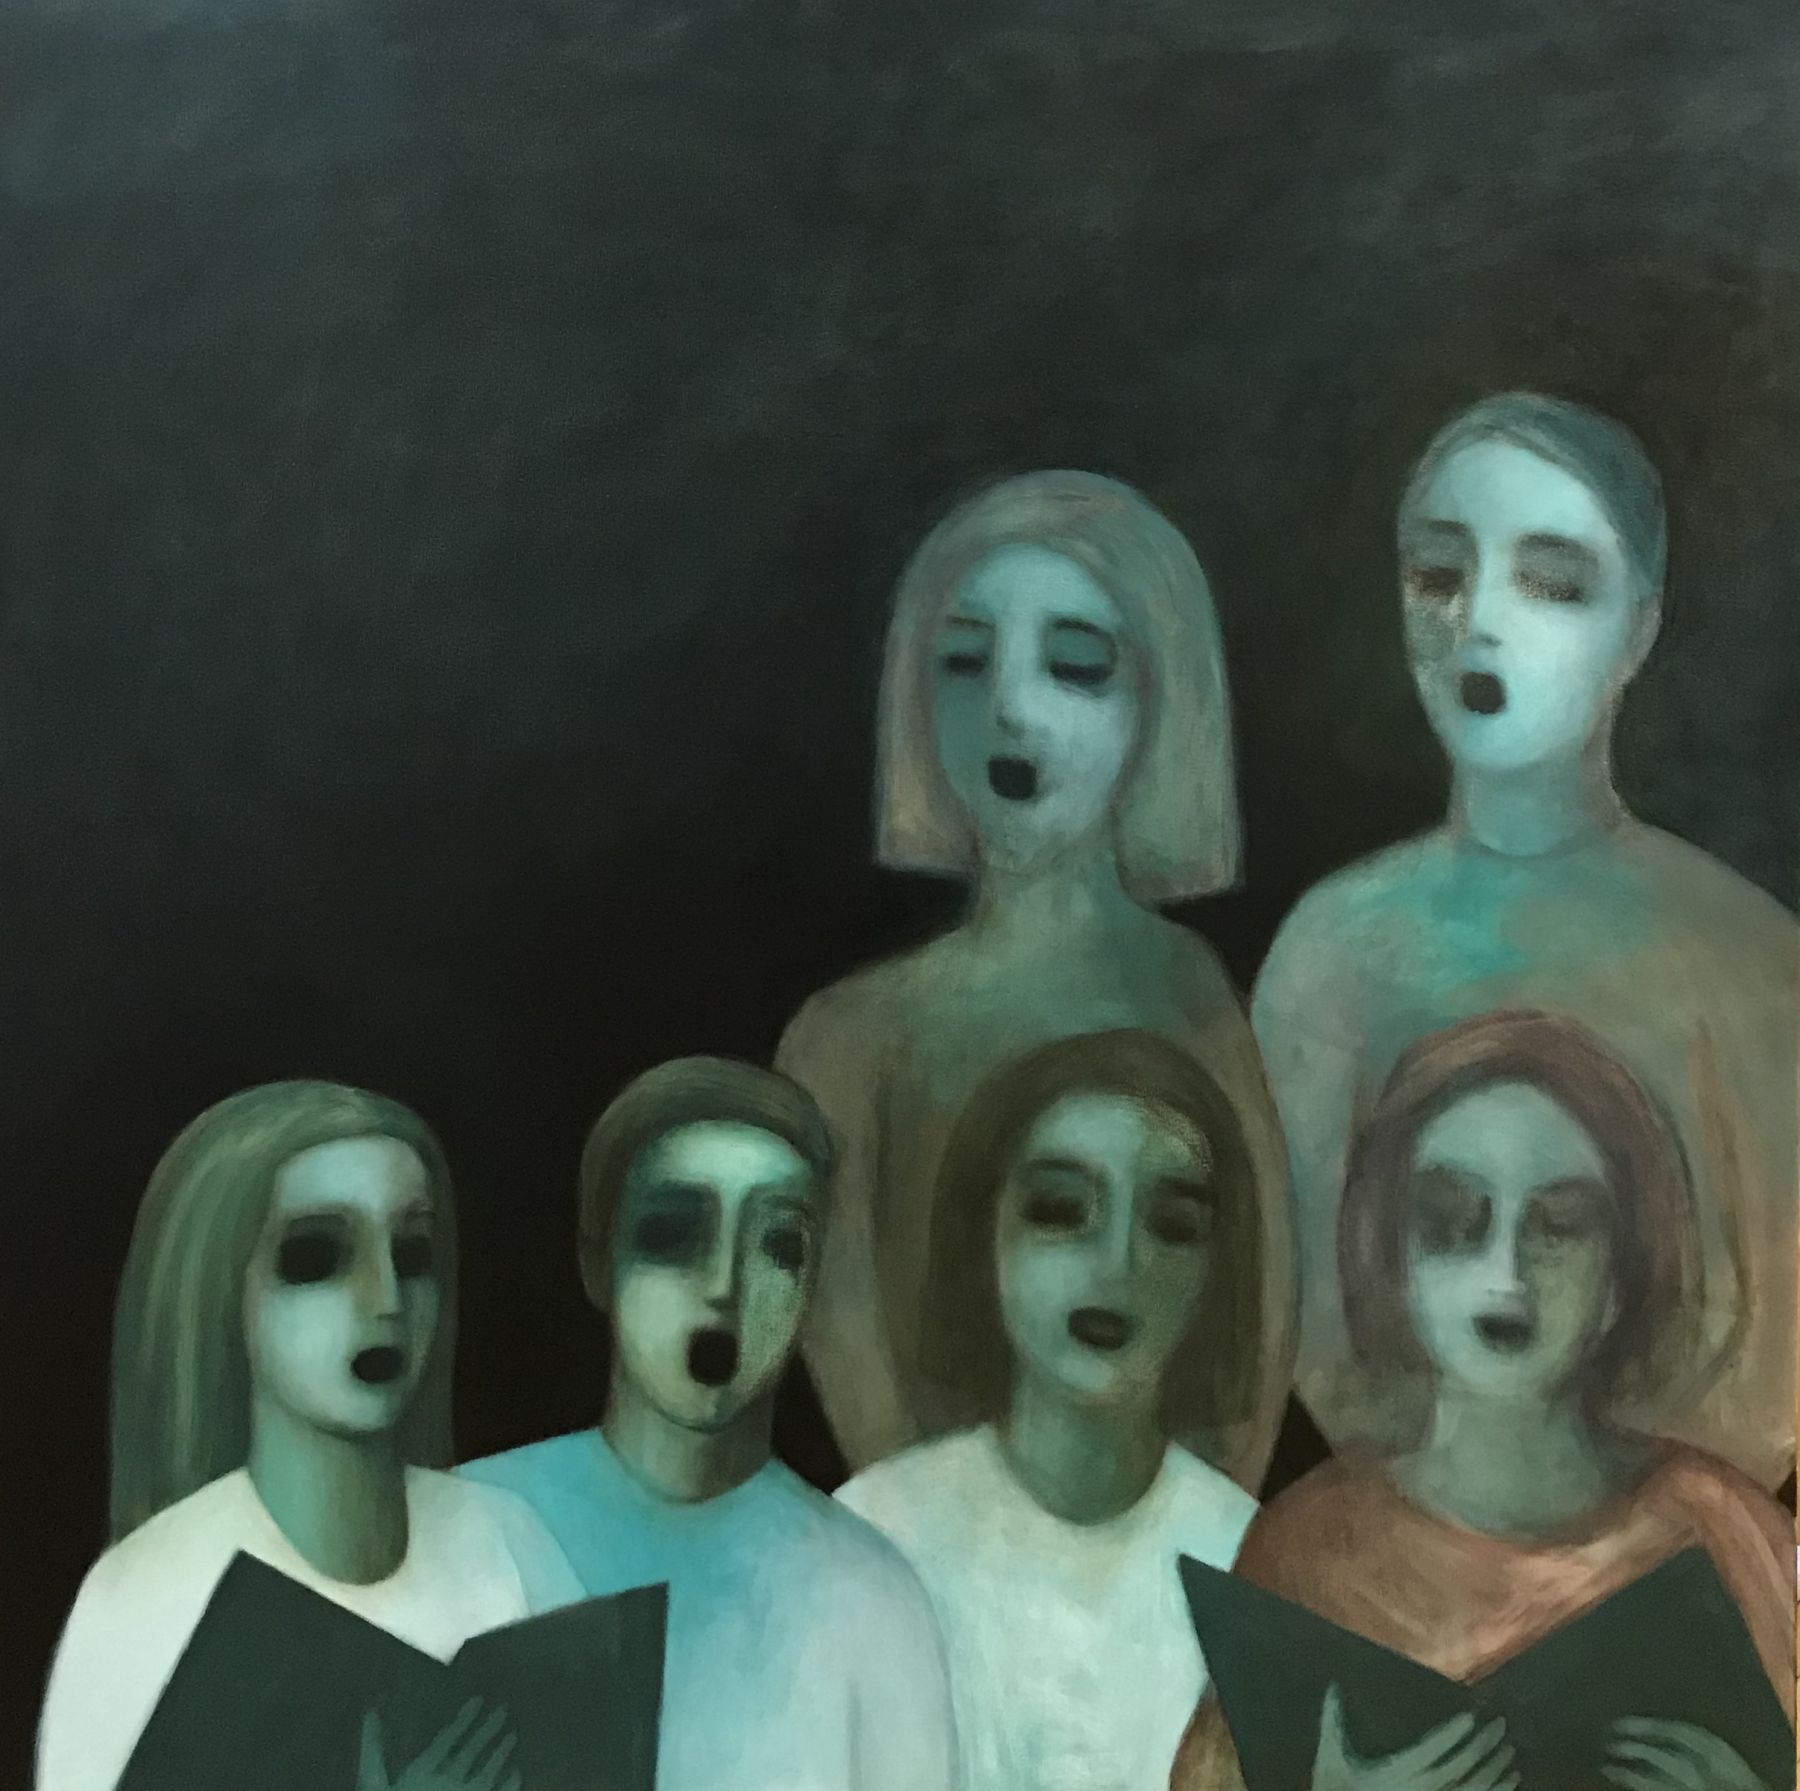 A painting by Ayse Wilson depicting a group of six people with hollowed black eyes singing in a choir